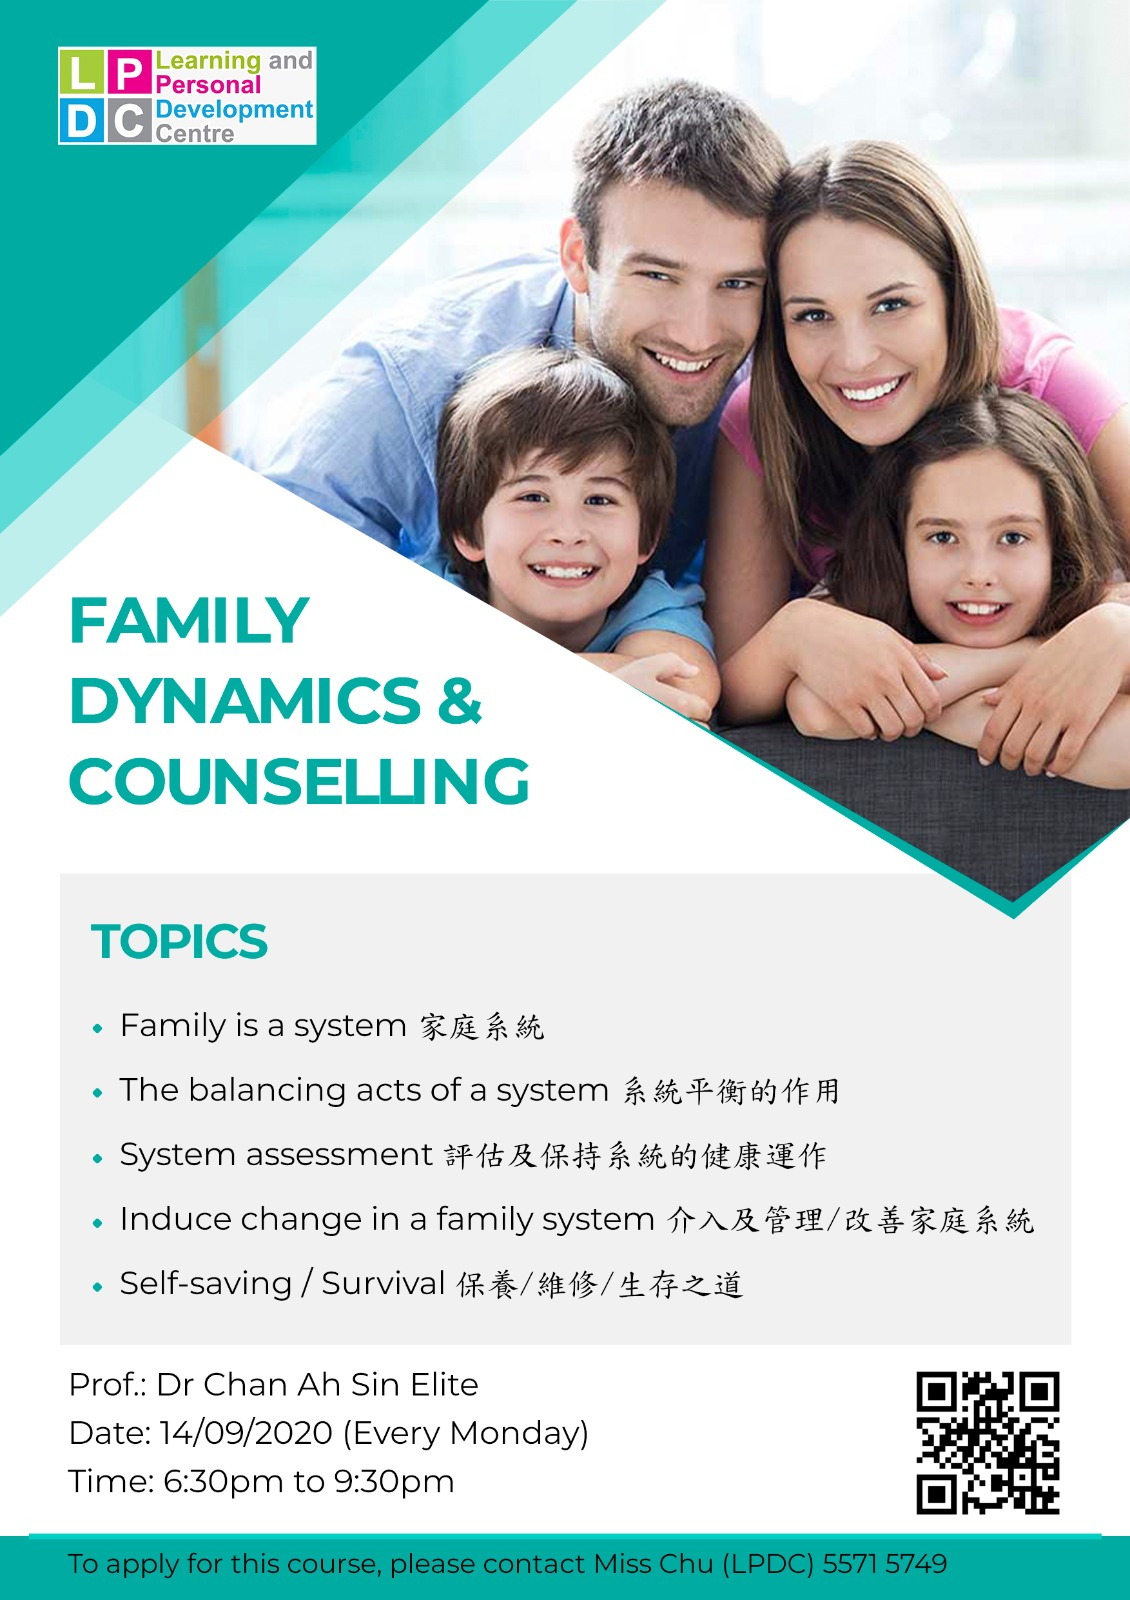 Family Dynamics & Counselling